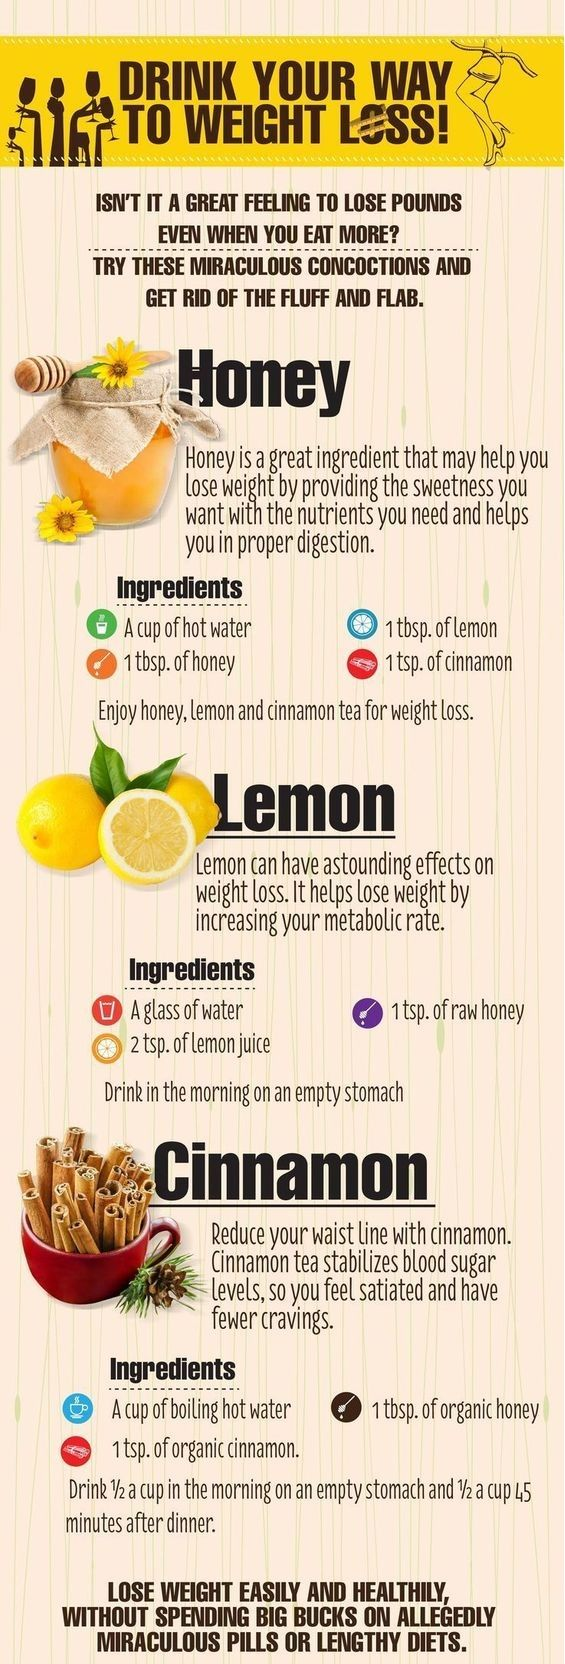 what can i drink to lose weight fast home remedies,  what to drink to lose weight overnight,  homemade weight loss drinks detox,  homemade weight loss drinks recipes,  weight loss drink lemon mint cucumber,  best thing to drink to lose weight,  weight loss drinks in urdu,  weight loss drink before bed,